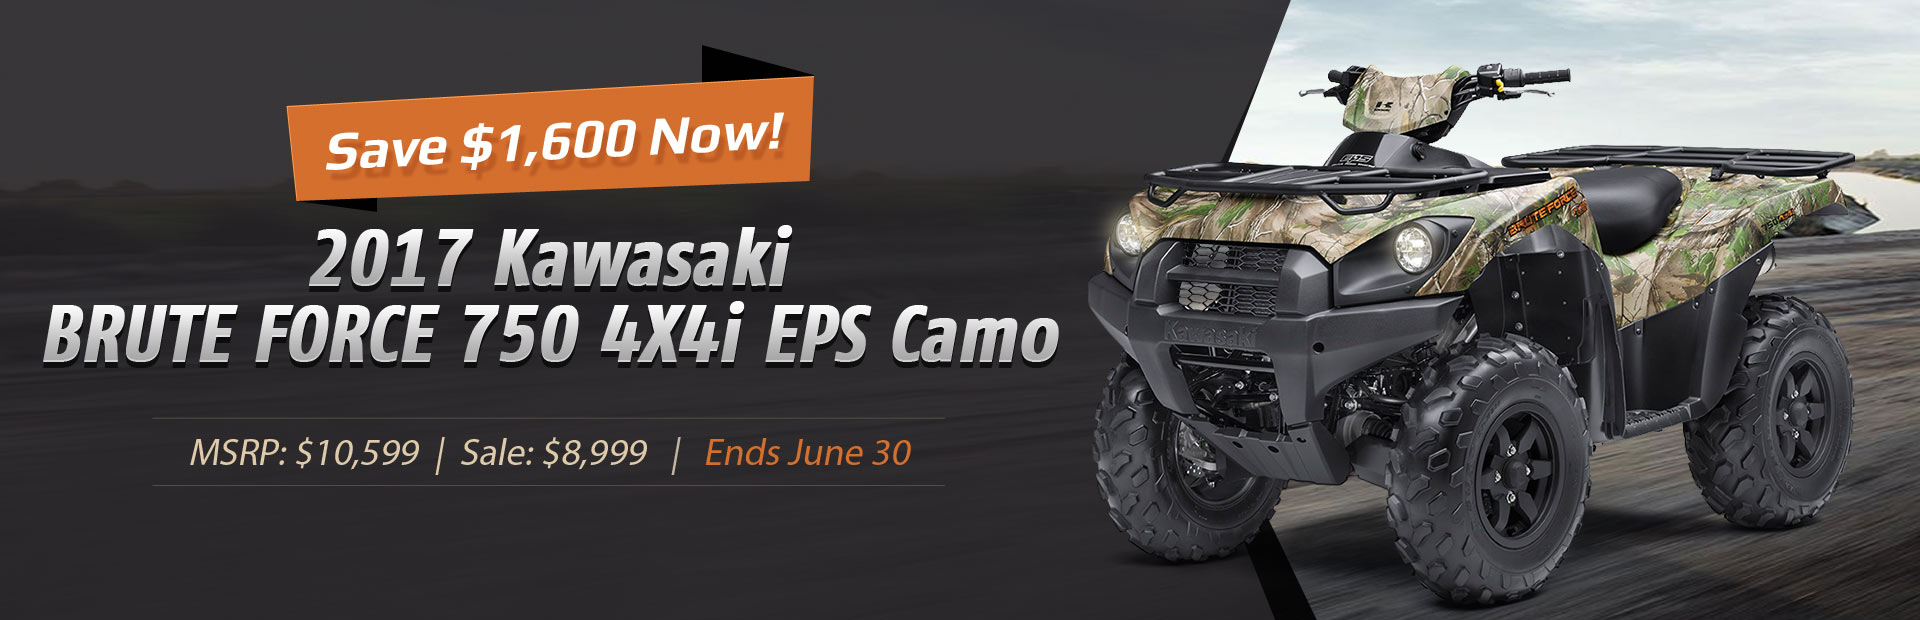 Save $1,600 now on the 2017 Kawasaki BRUTE FORCE 750 4X4i EPS Camo!